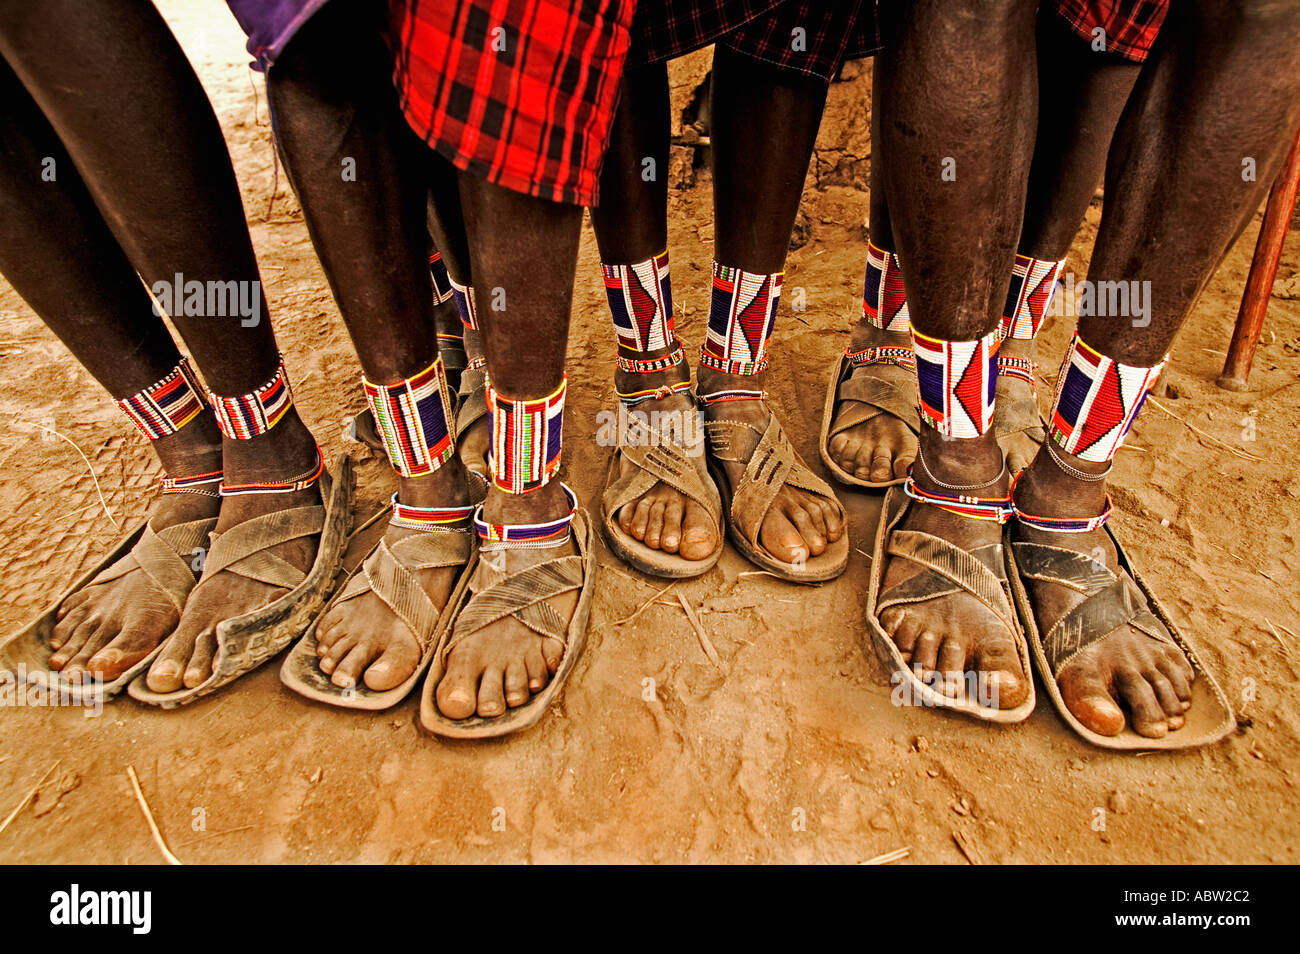 638068e66f59f9 Maasai people Close up of leather sandals and intricate beadwork on the  Maasai men feet Kenya